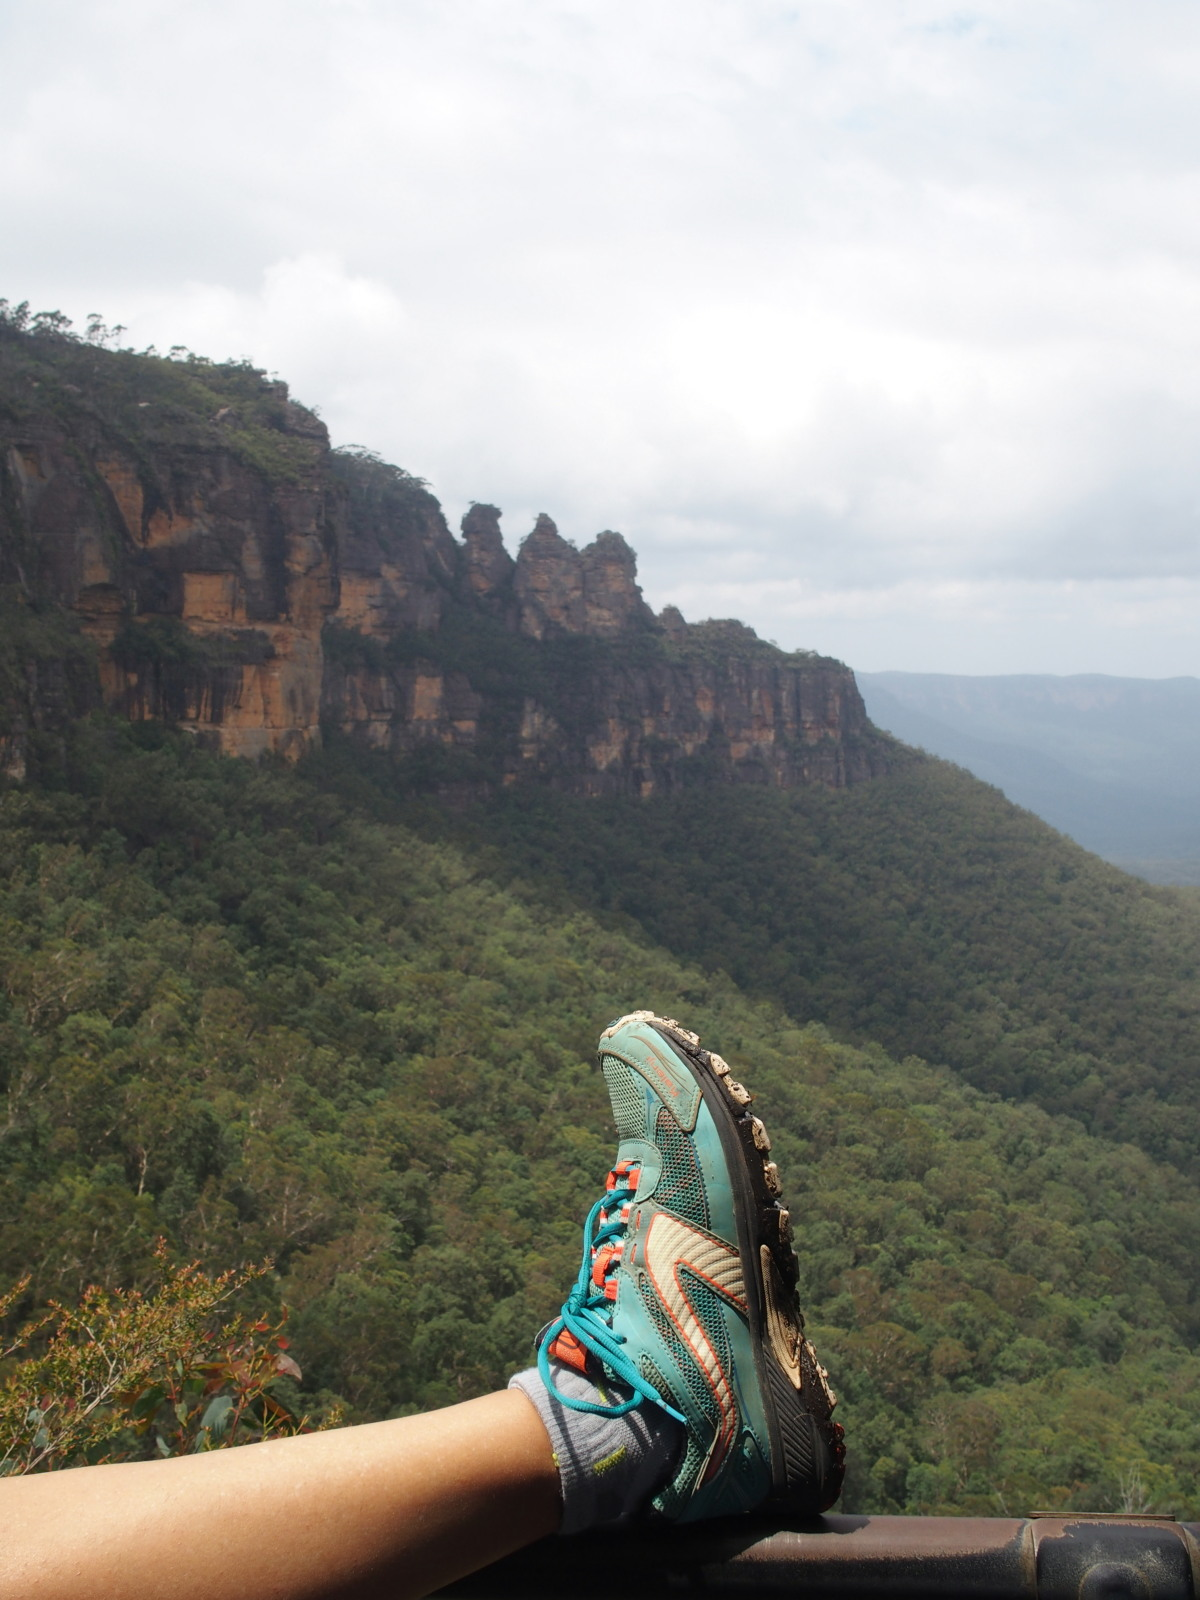 Les Kalenji crossover Decathlon de Guinou aux Blue Mountains en Australie